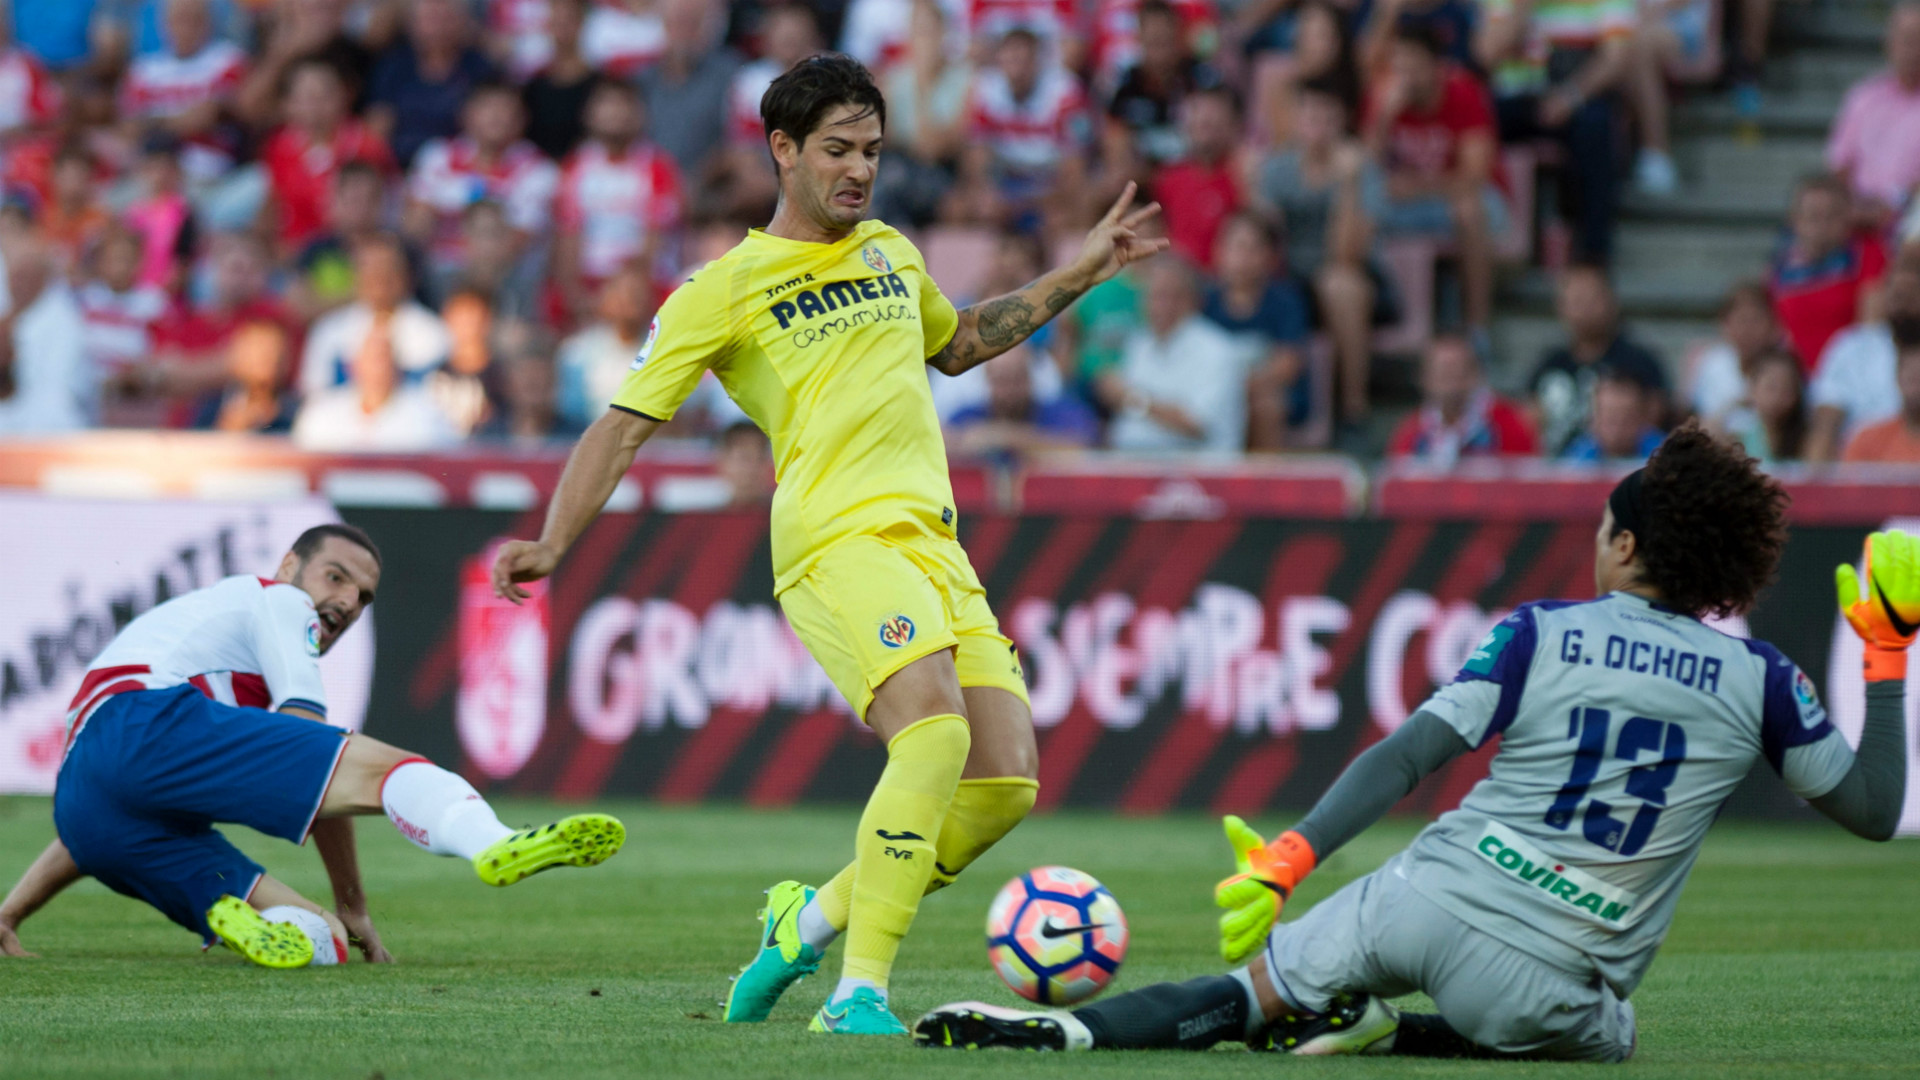 Video: Granada vs Villarreal